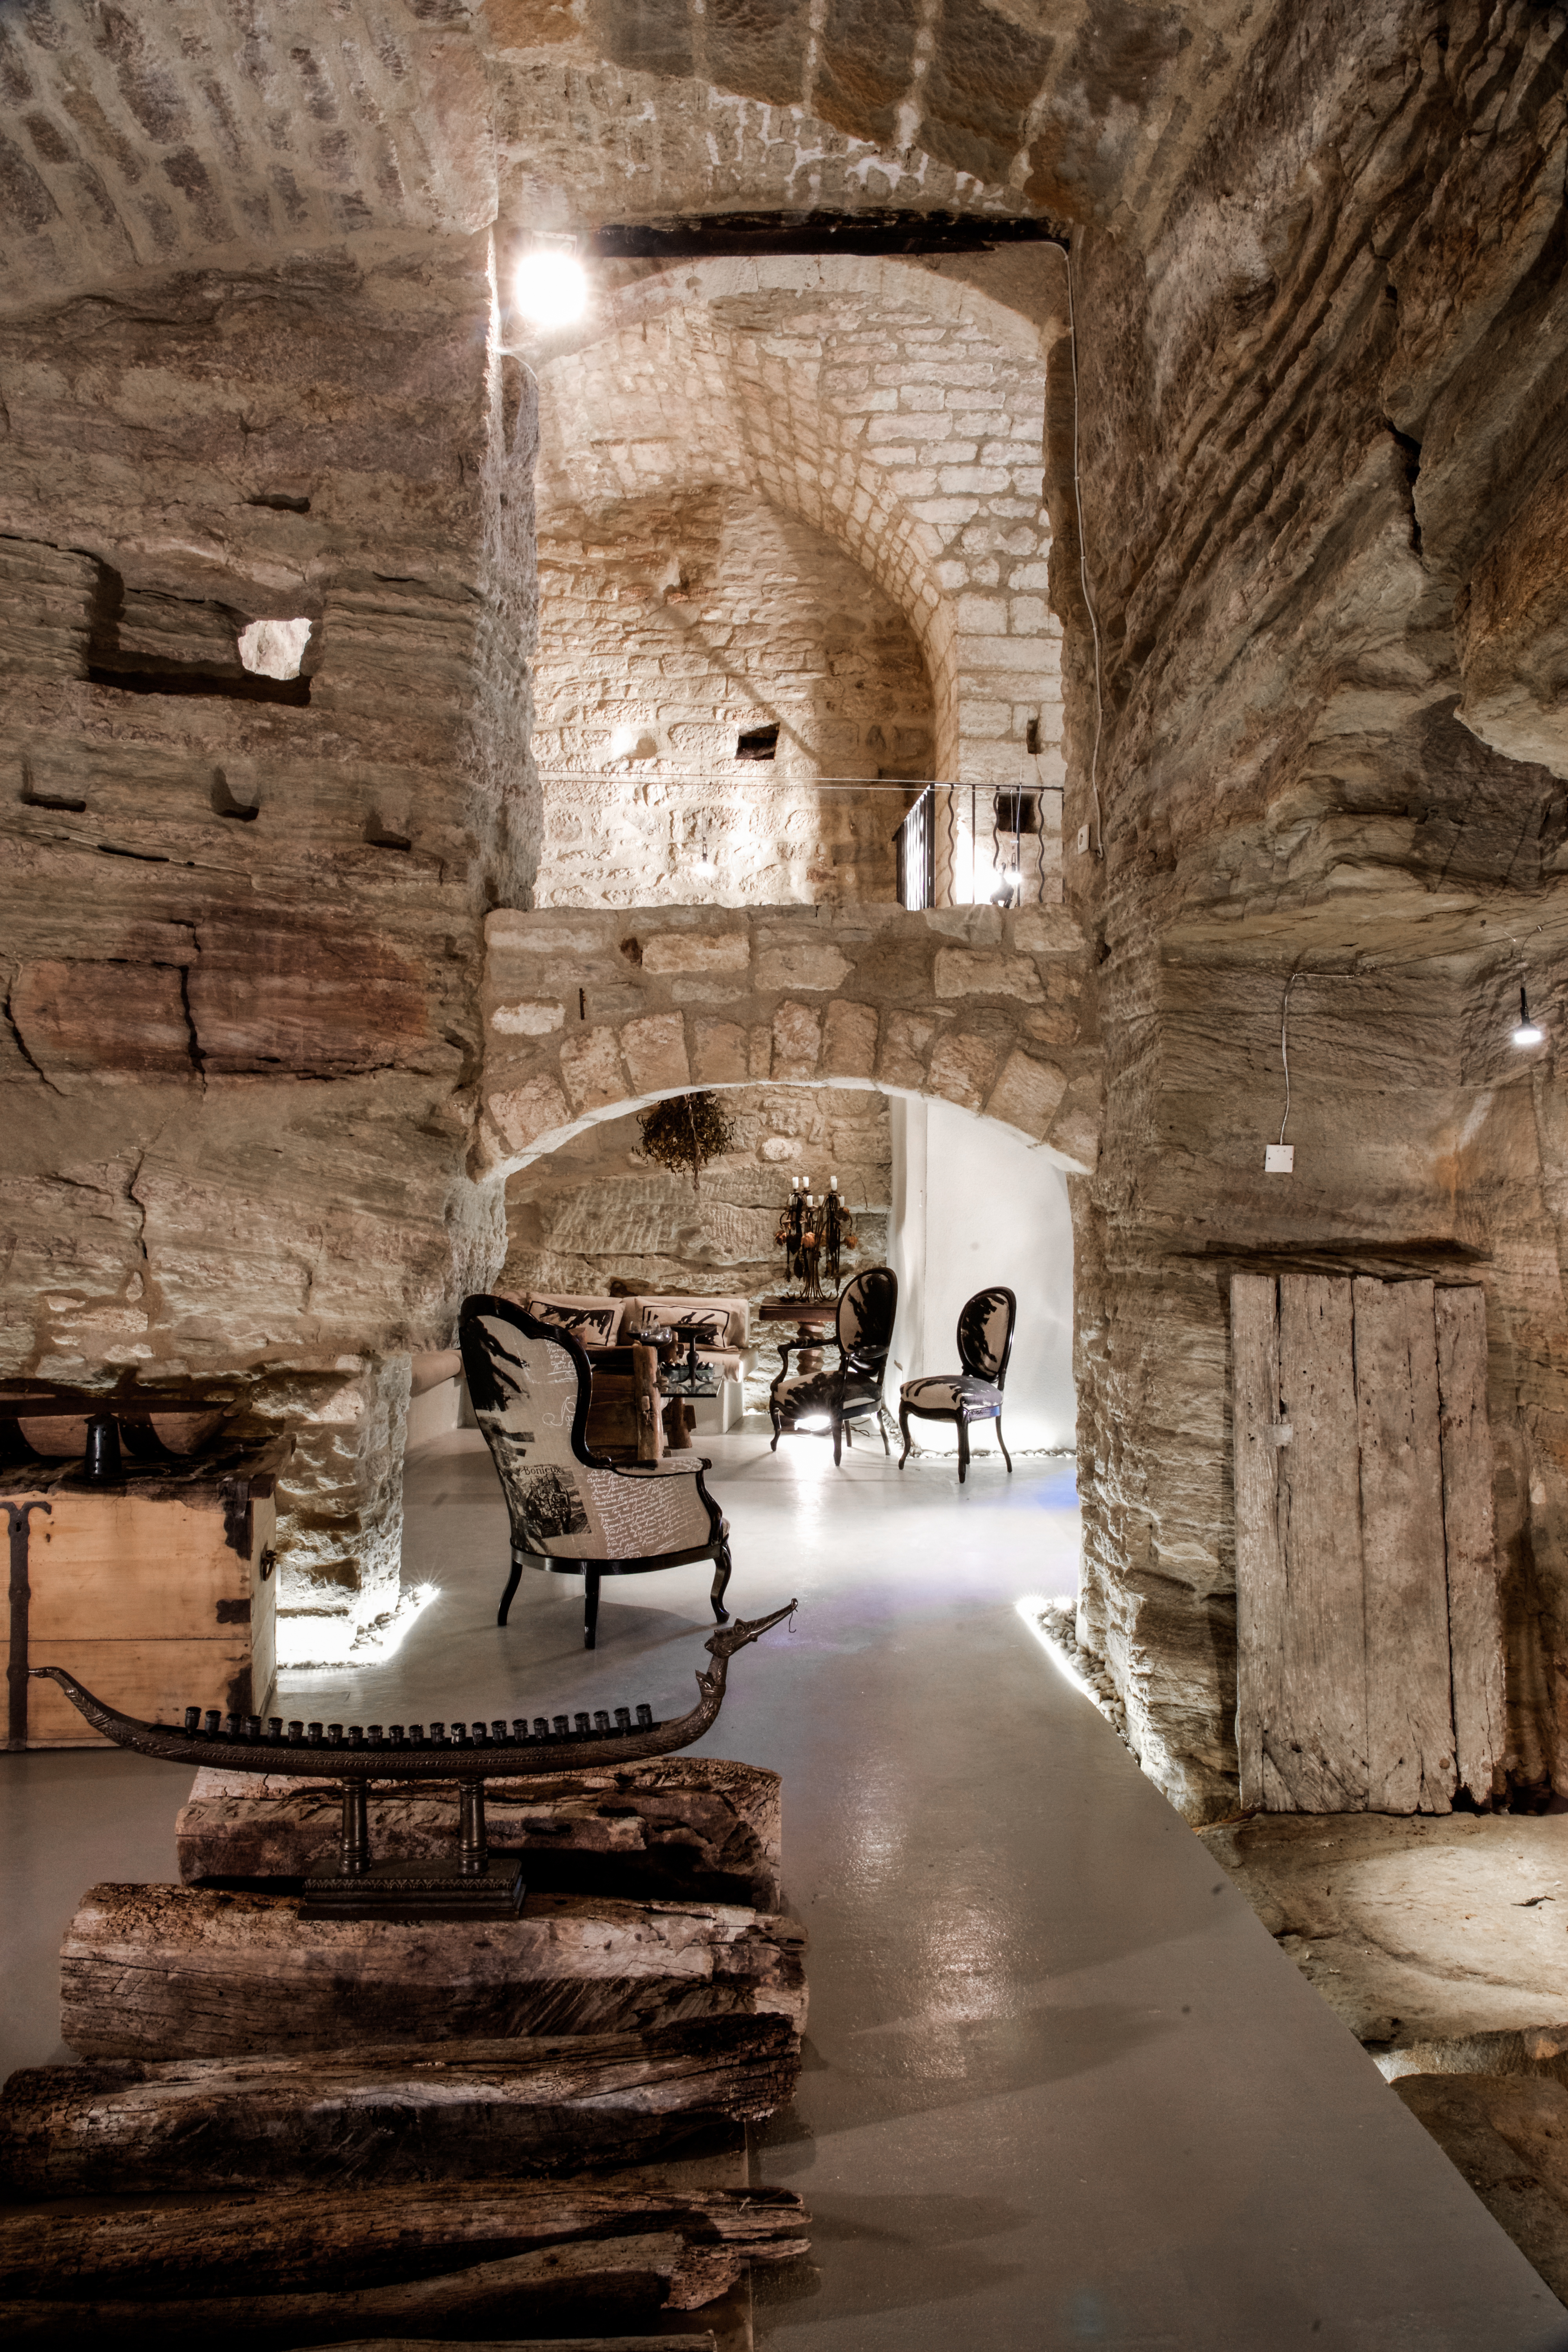 view from exibition space petrified wood beams in forground.jpg